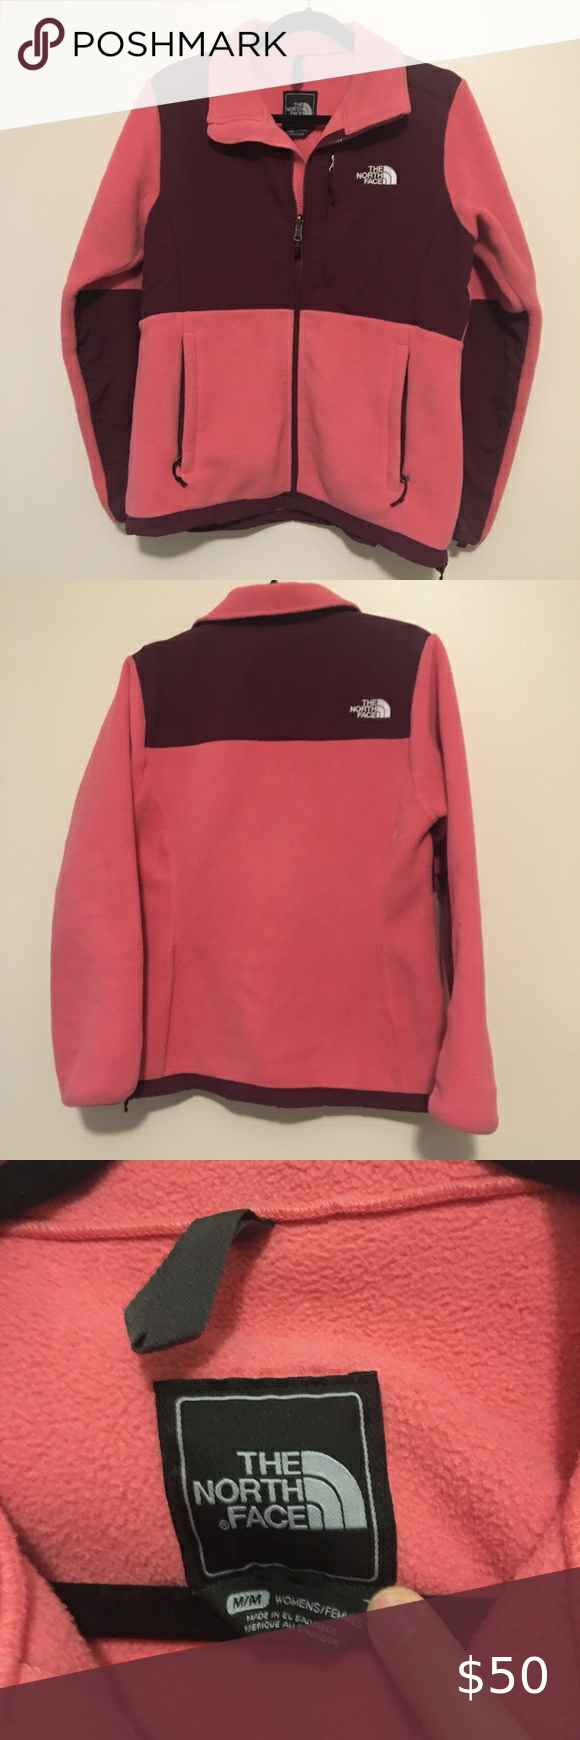 North Face Jacket Fashion Clothes Design North Face Jacket [ 1740 x 580 Pixel ]